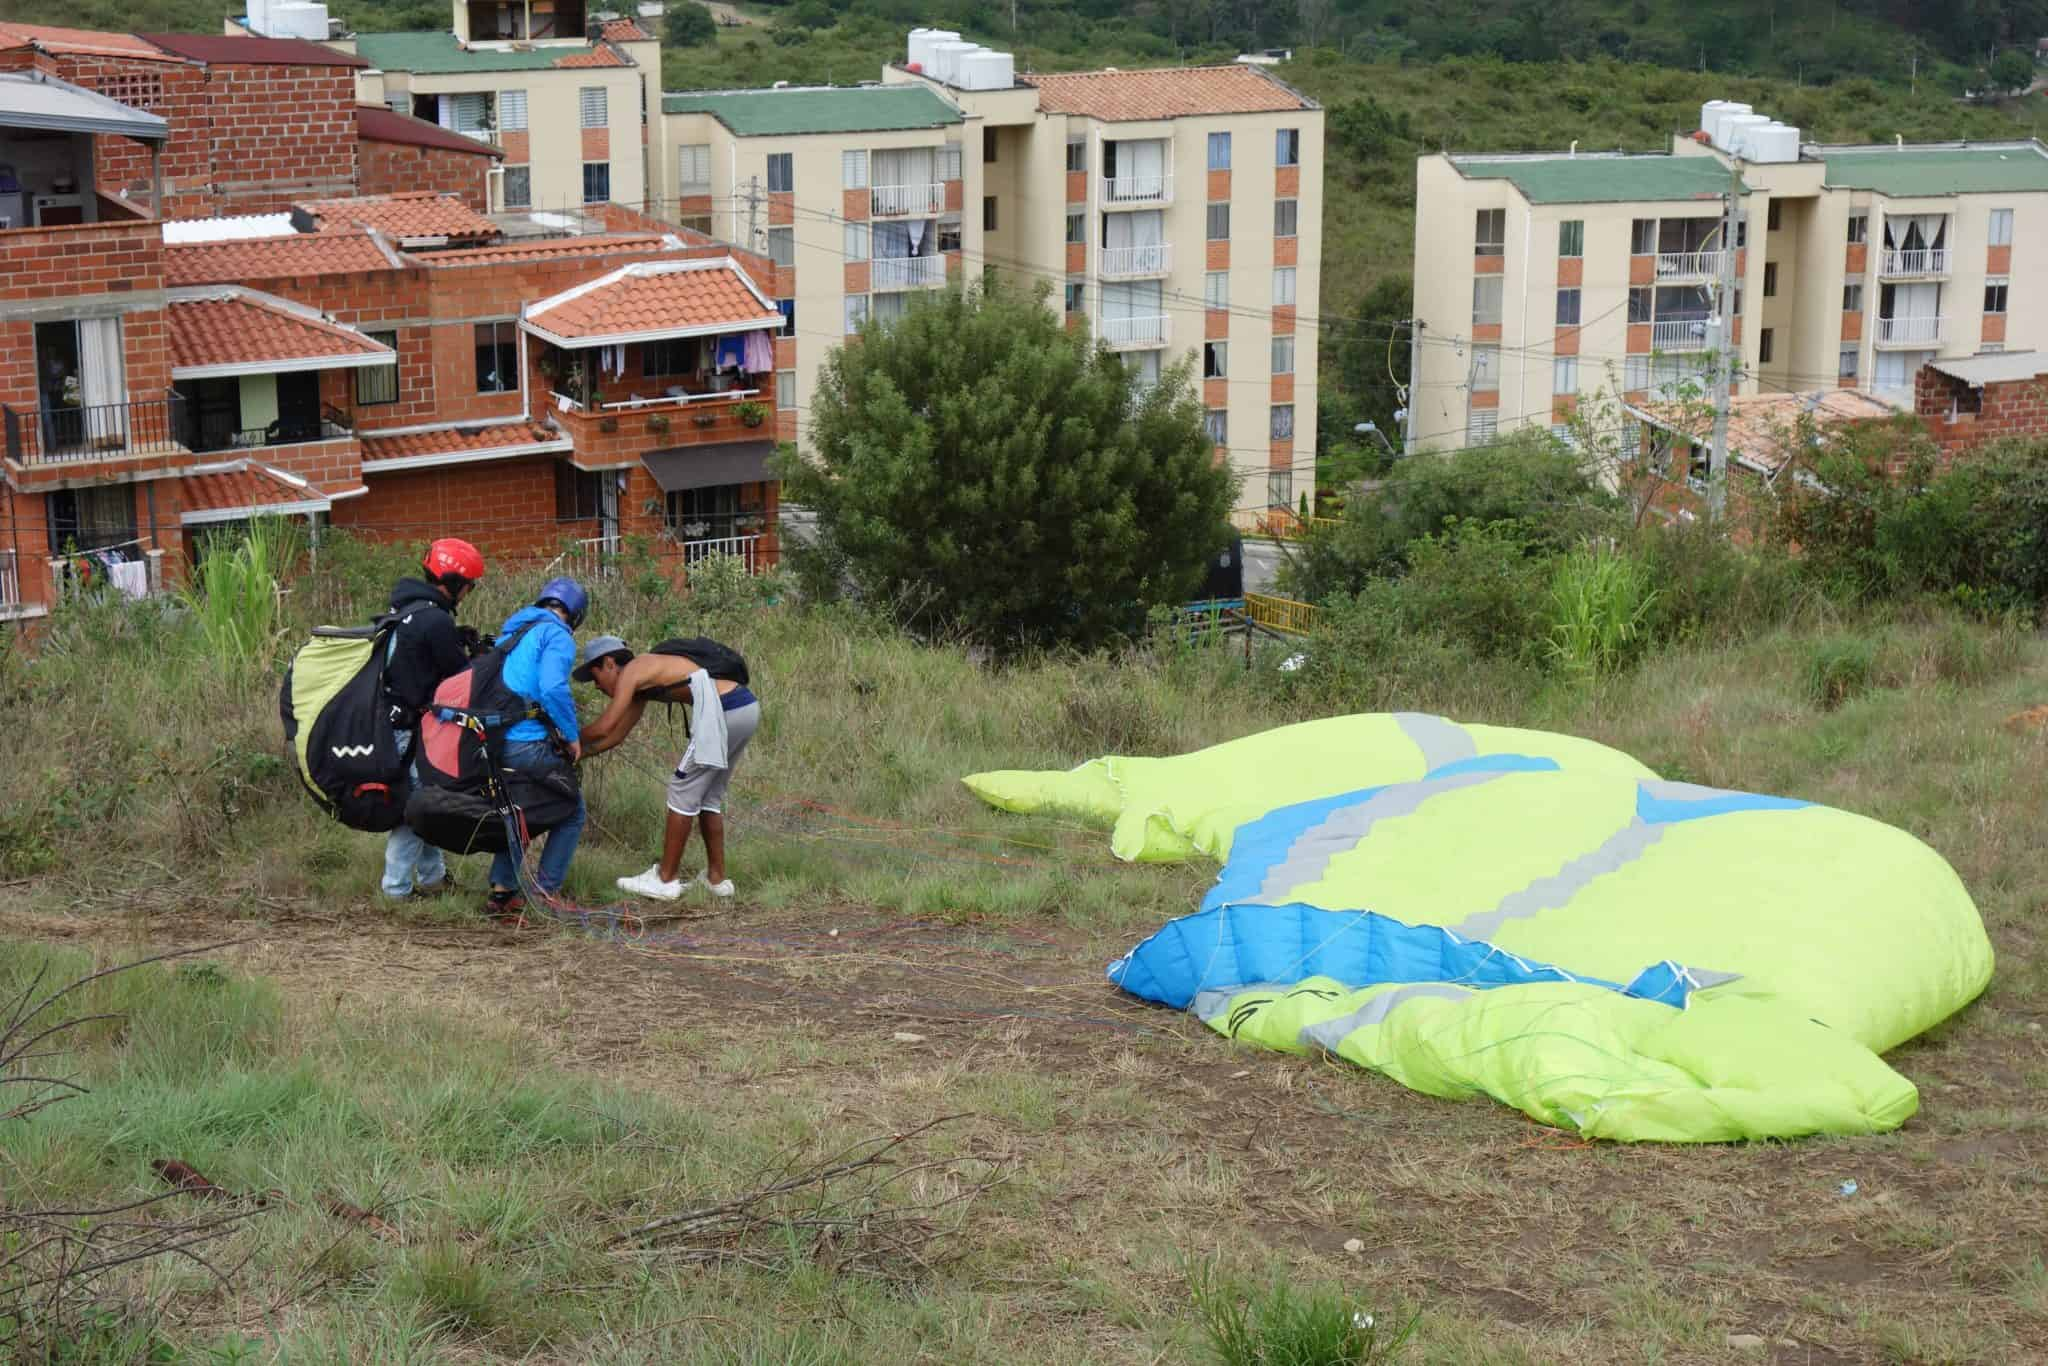 Paragliding In Medellin: Admire The City With Birds